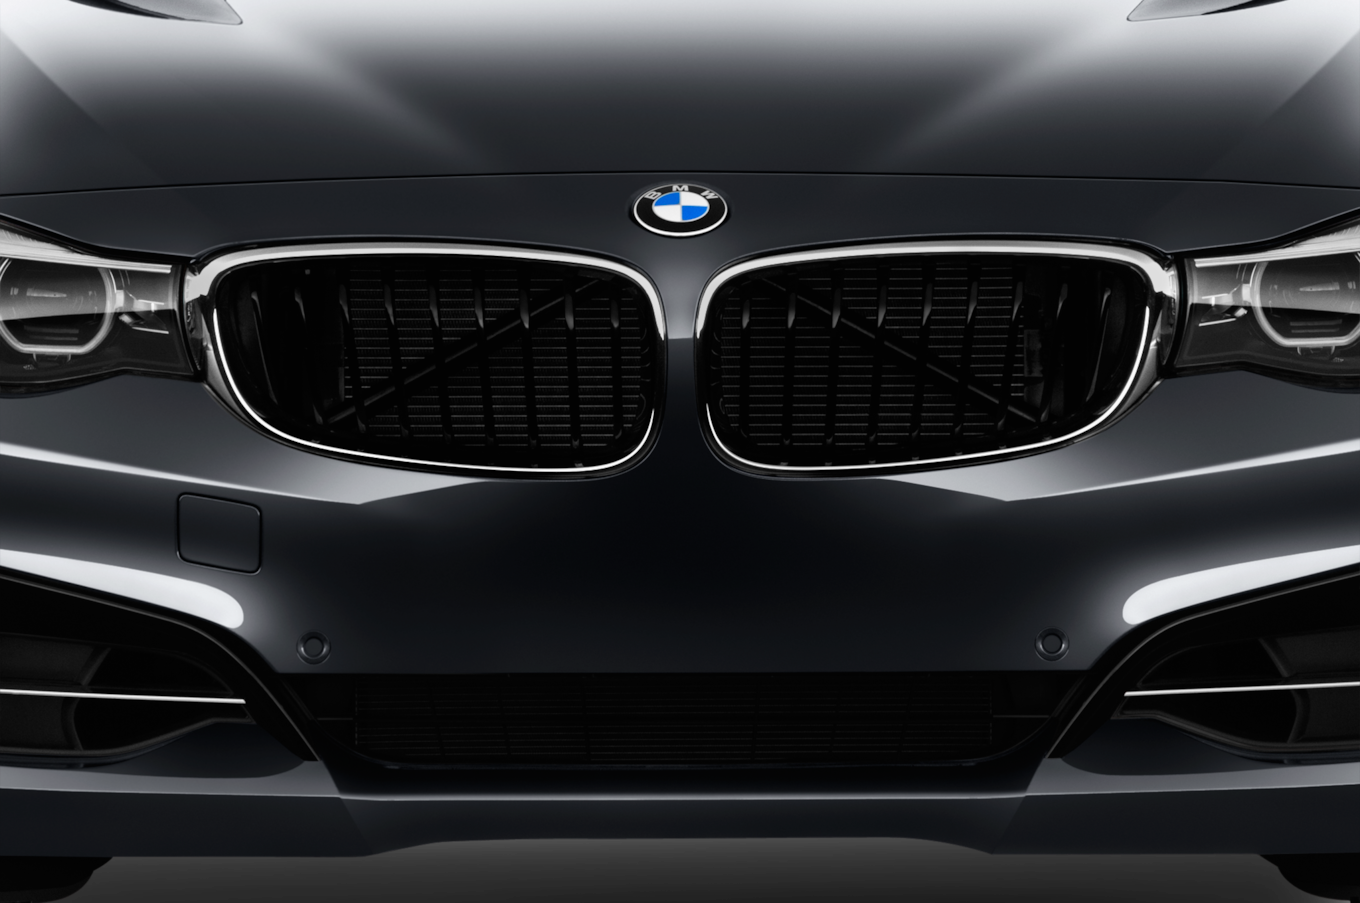 bmw hd wallpapers 1080p download